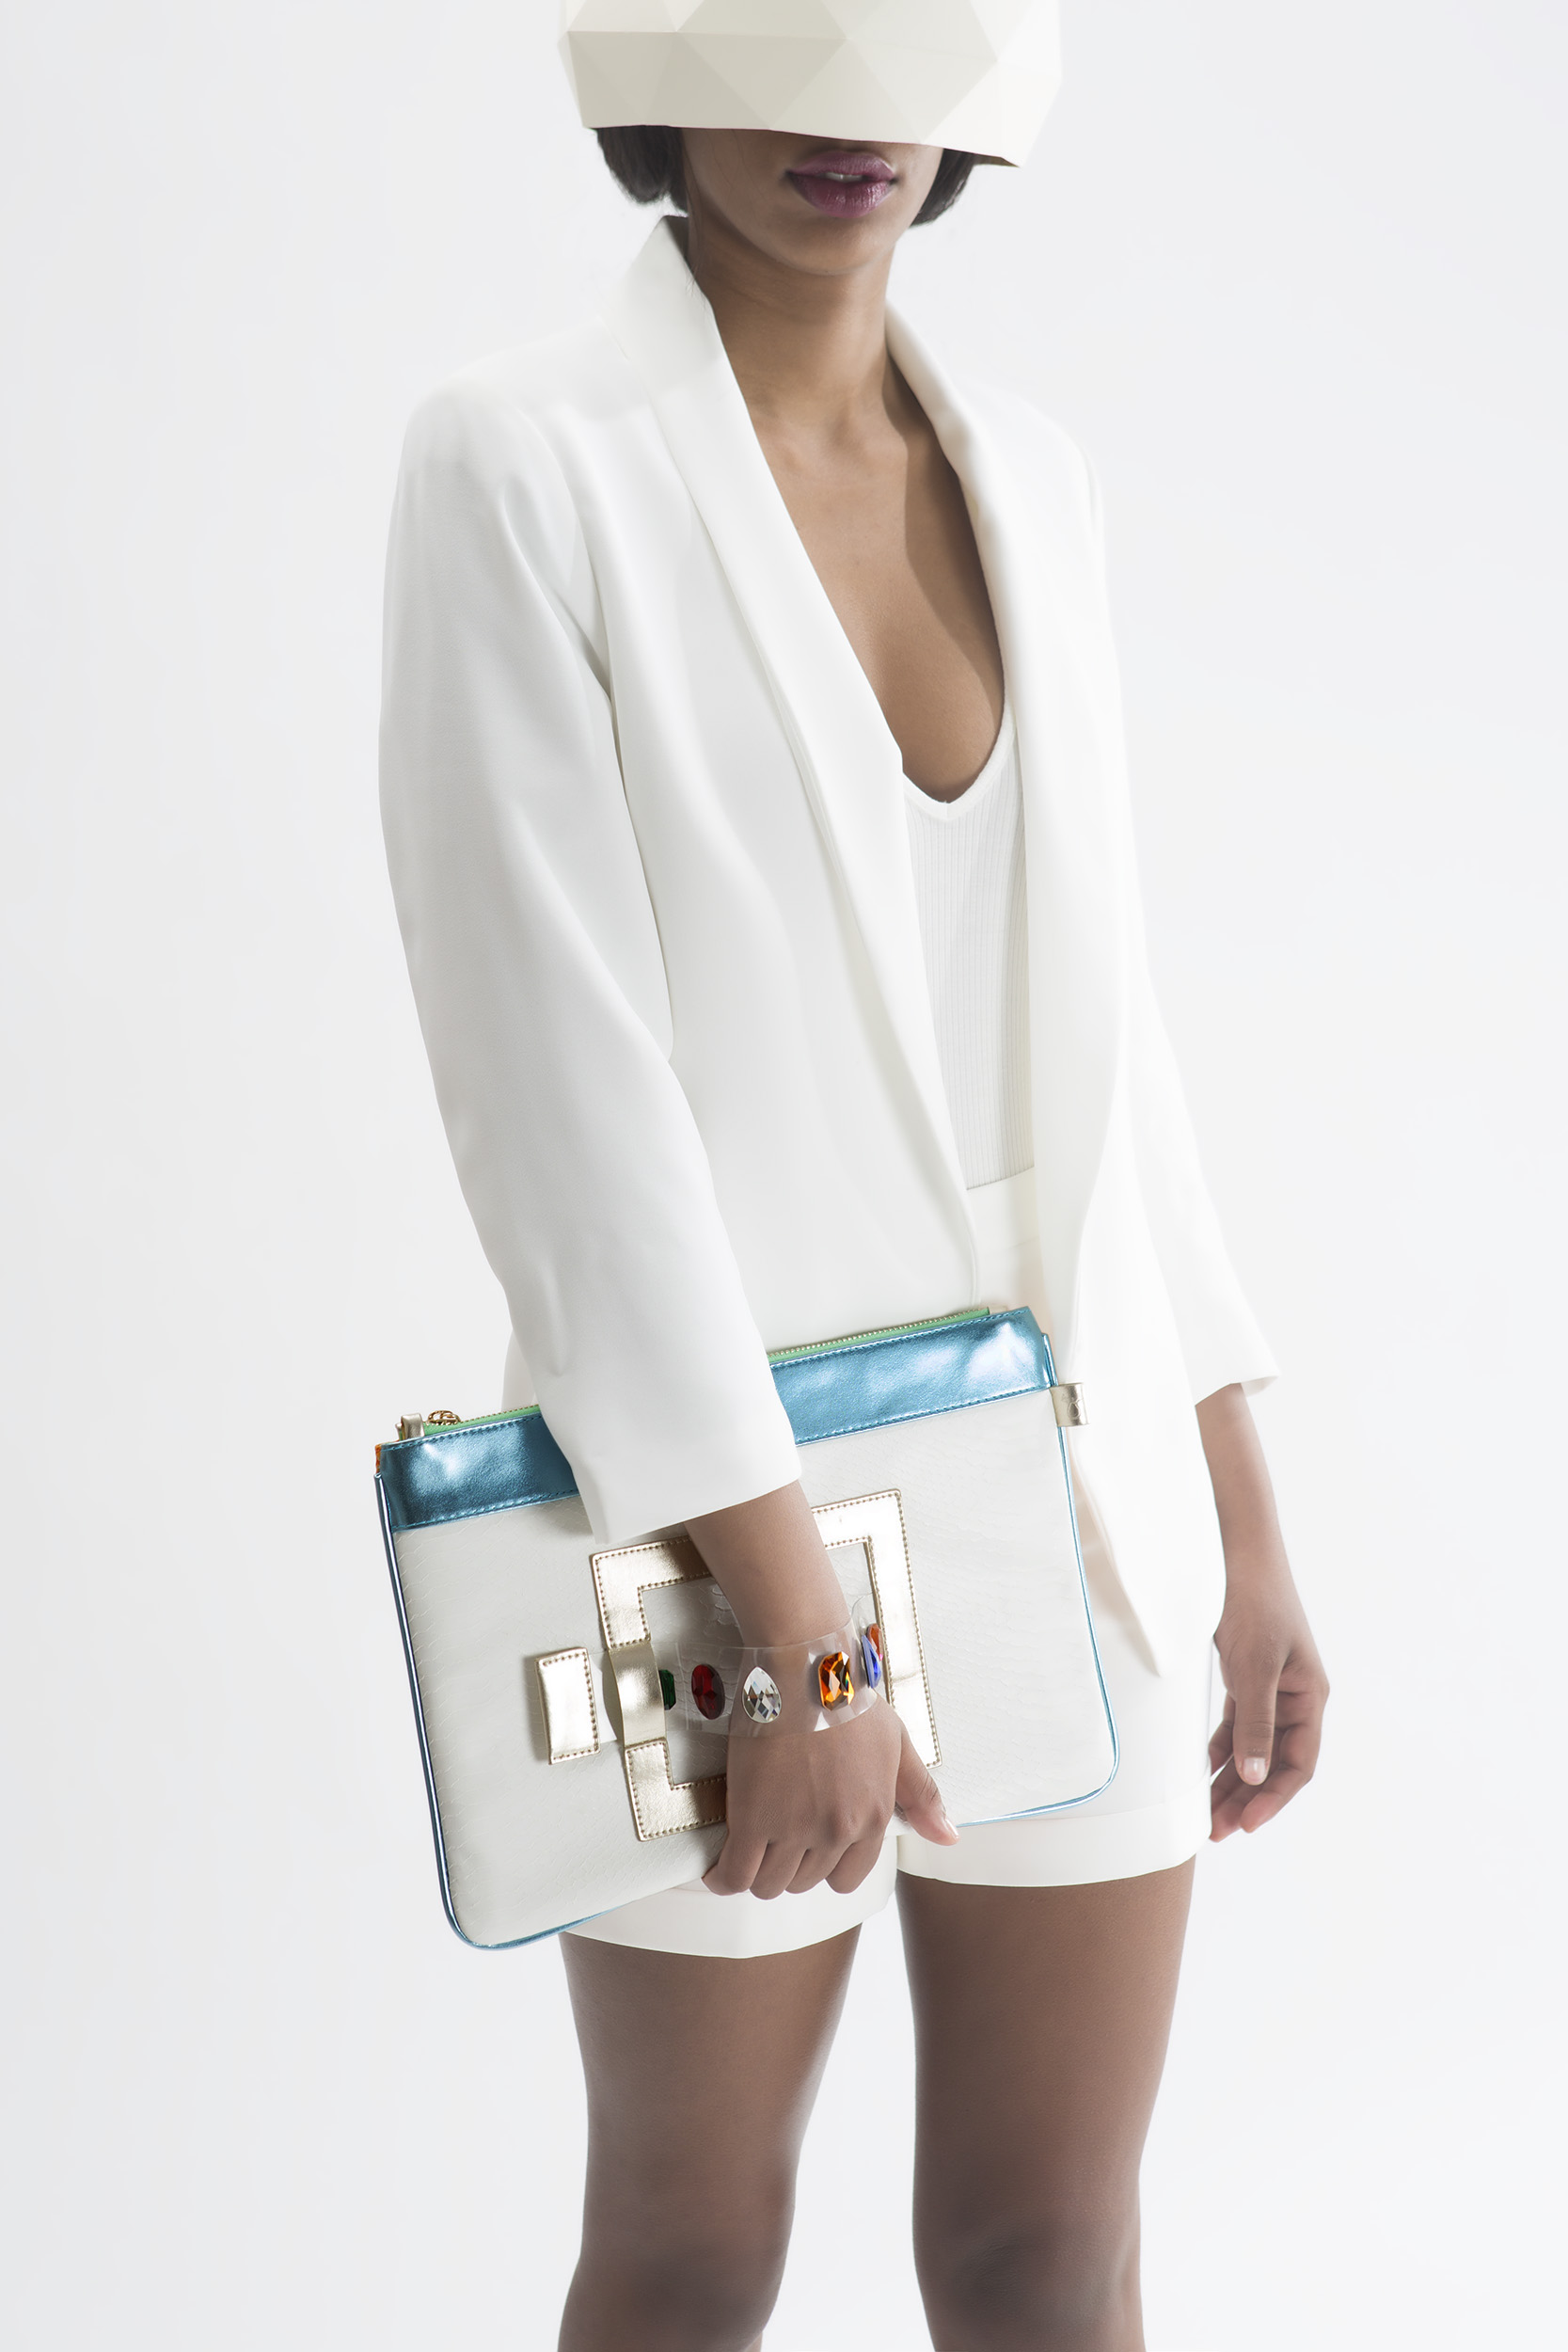 FruitenVeg-GEMA bag-never-leather-imitation-leather-luxury-Ipad bag-bracelet-clutch-white-turquoise-rhinestones-large-bag